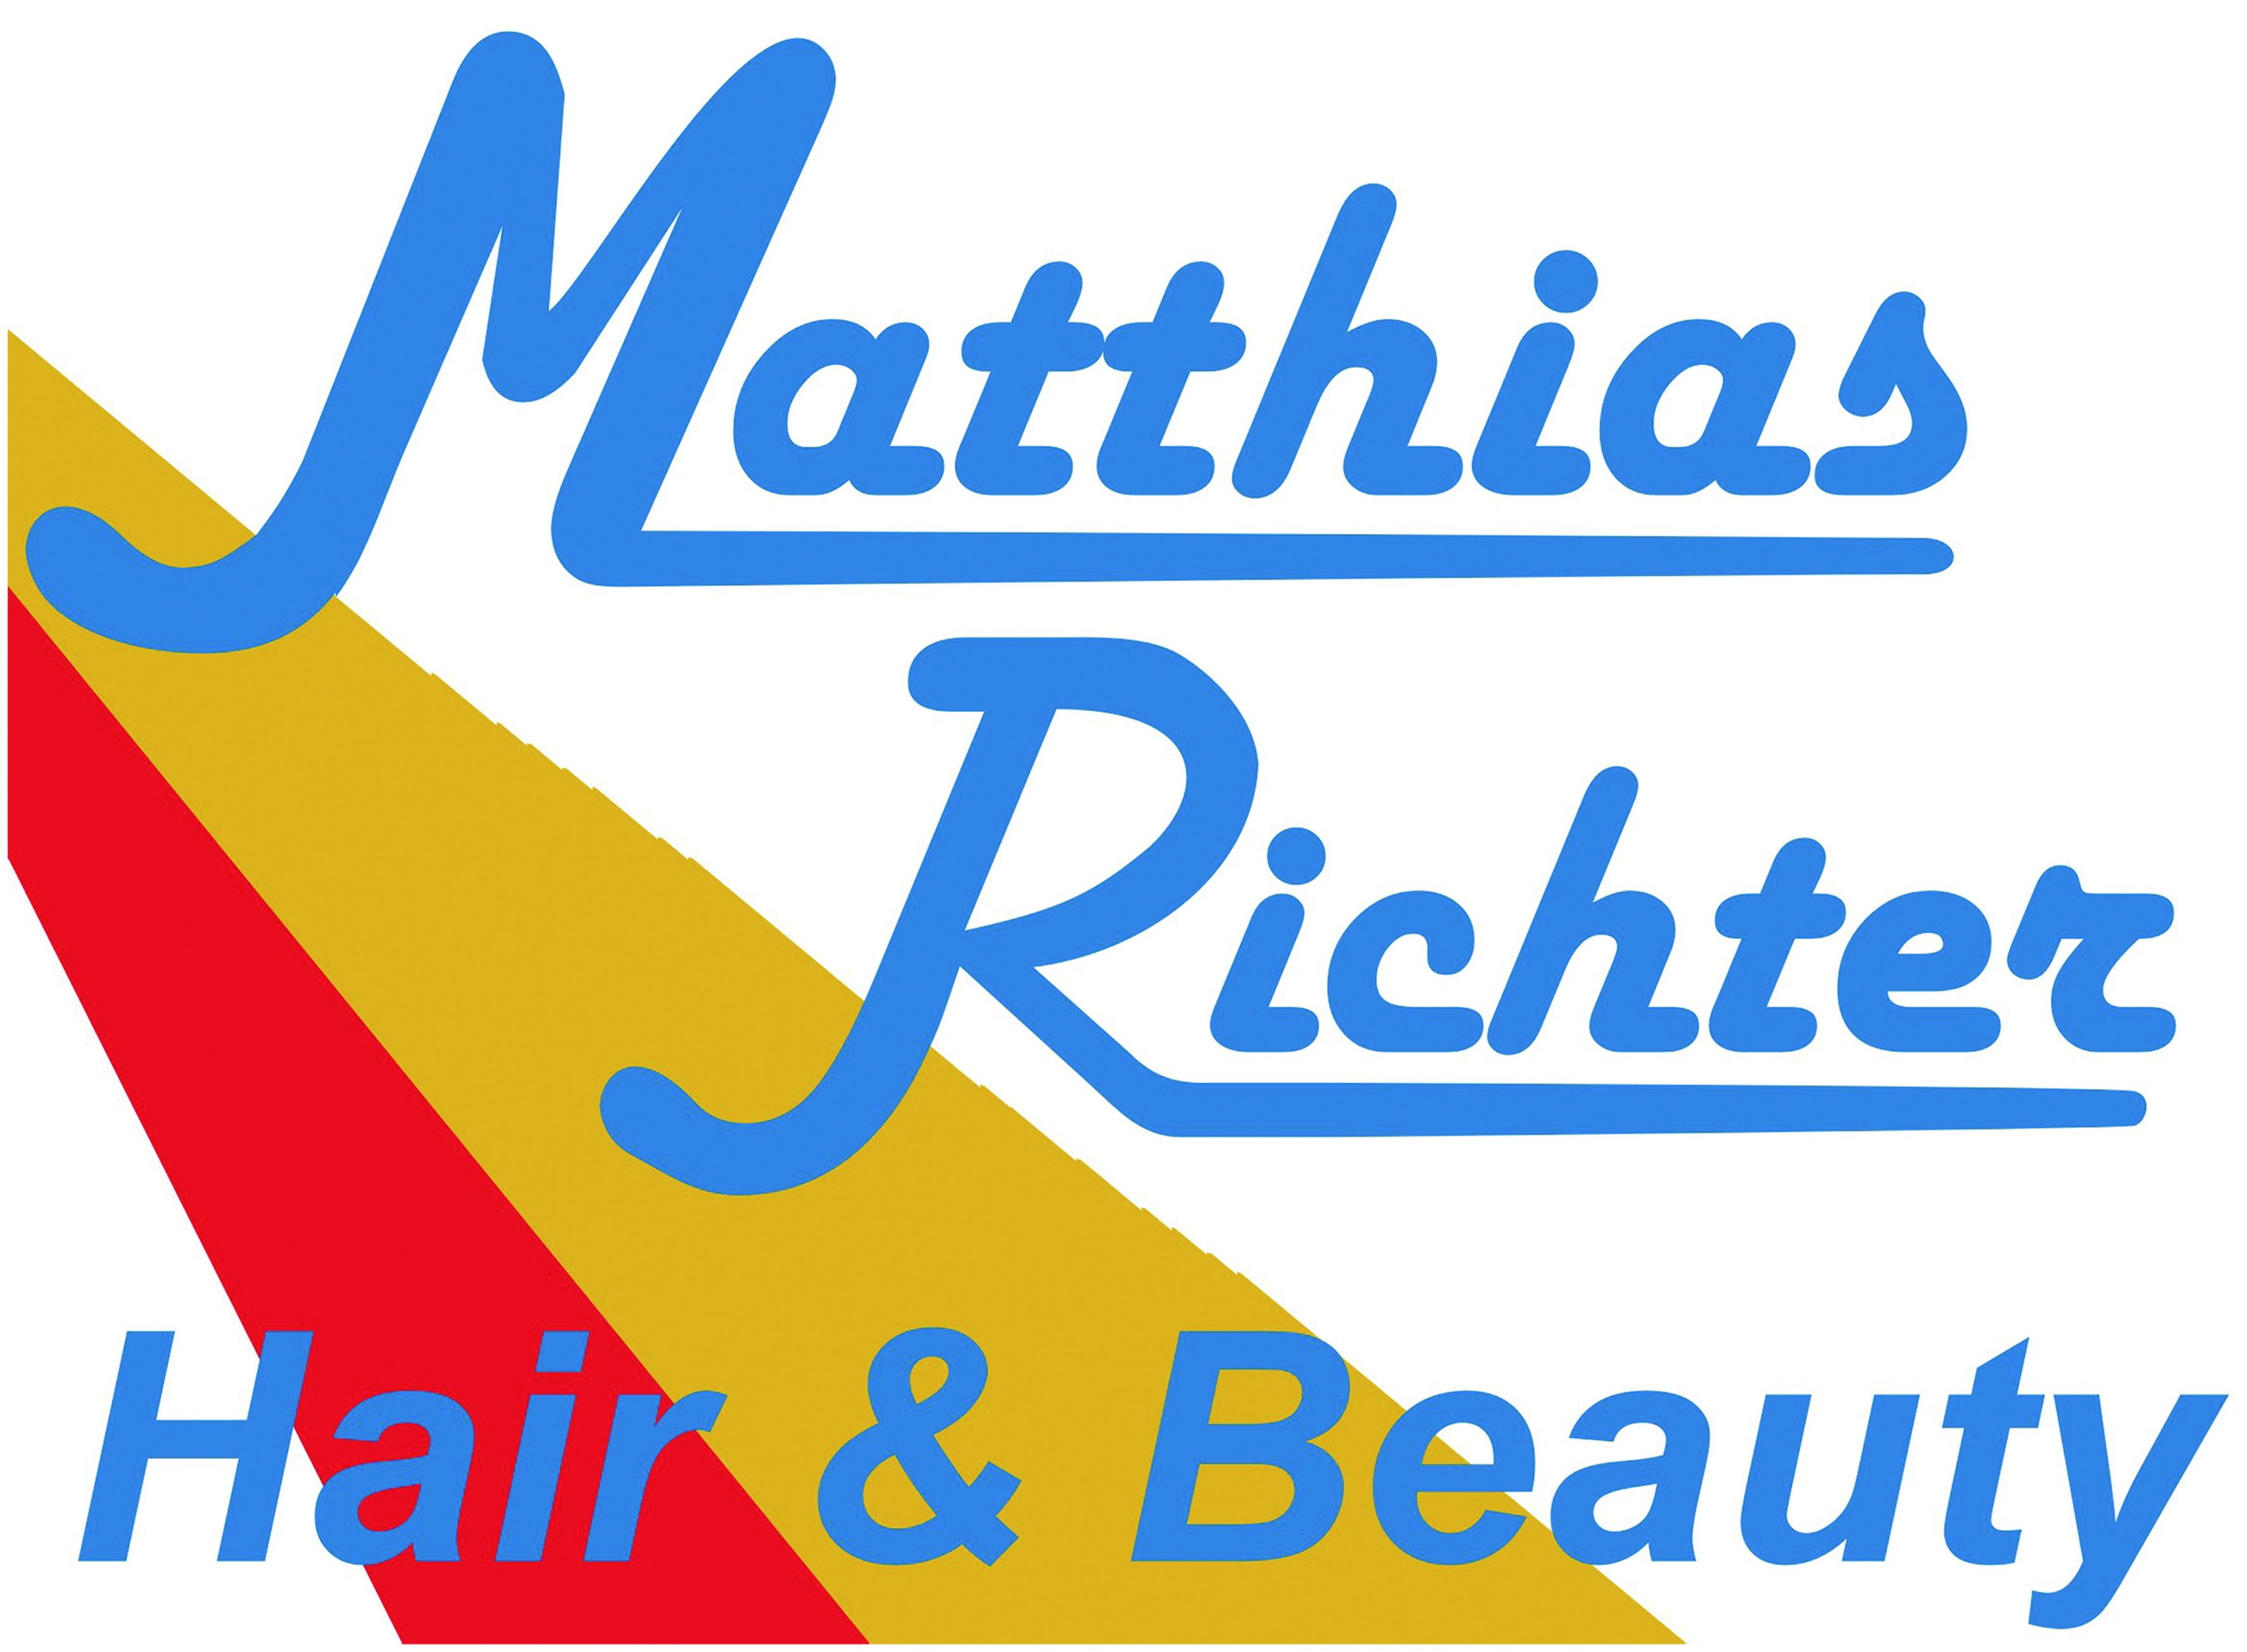 Hair & Beauty Richter